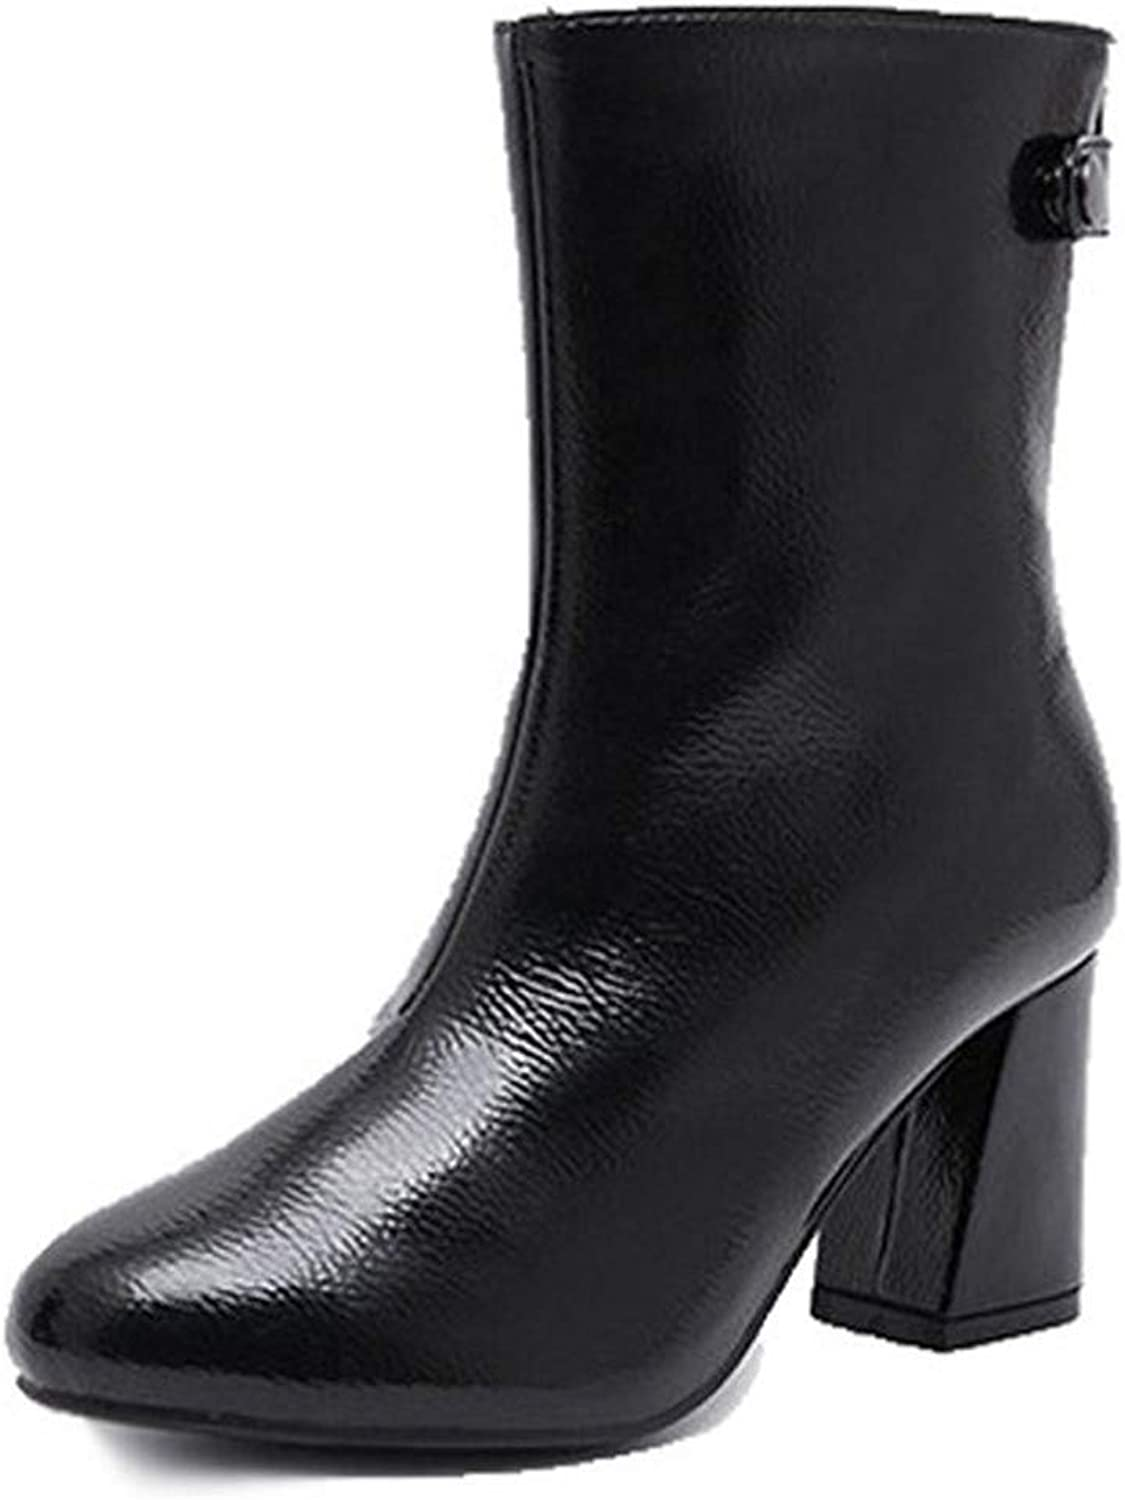 Winter Ladies Black Thick with Pointed Boots Large Size Warm Cotton Lining